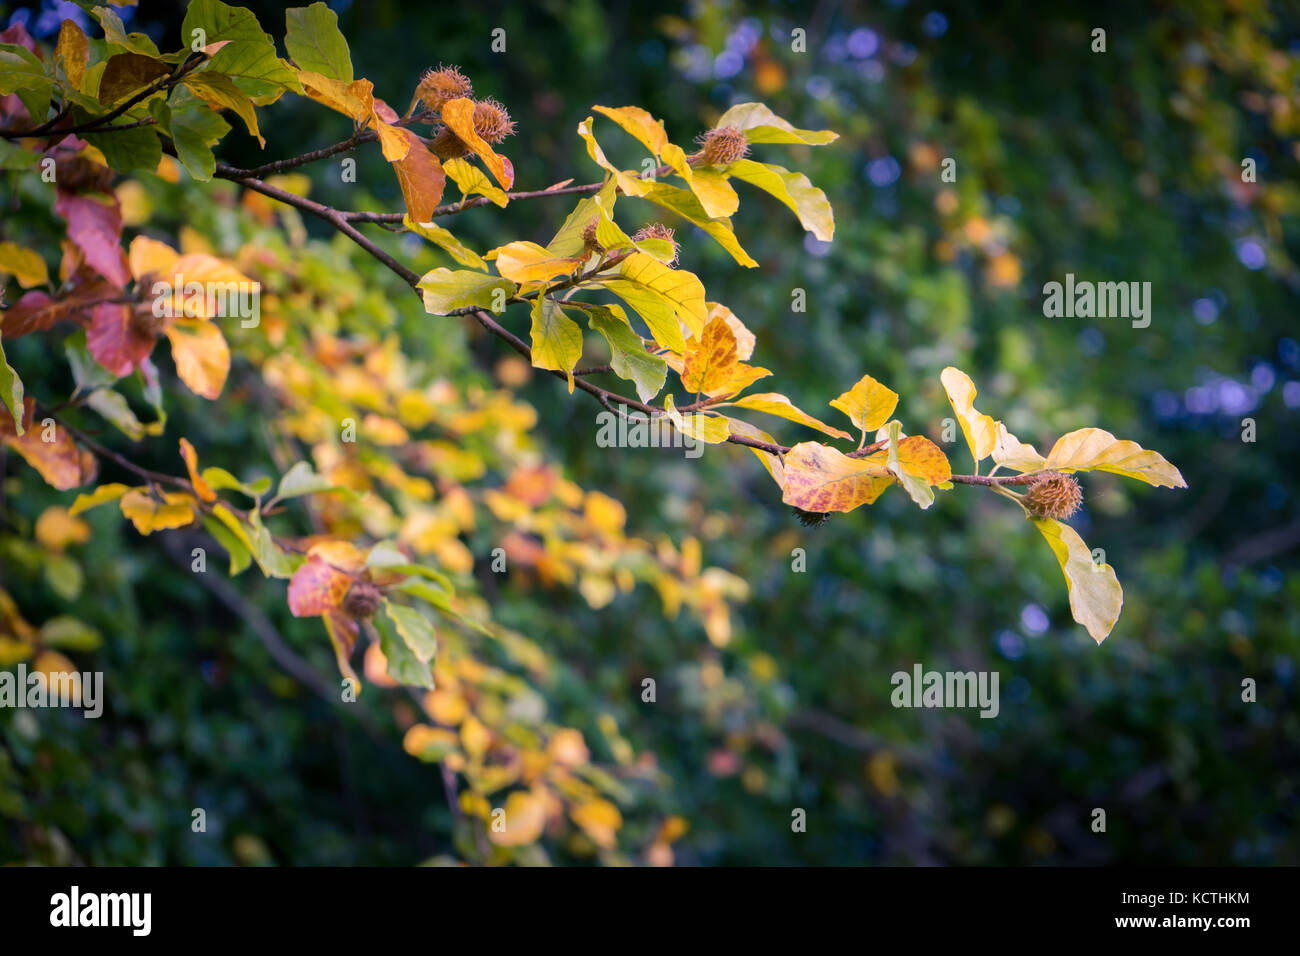 Tree Changing Color Leaves During Stock Photos & Tree Changing Color ...